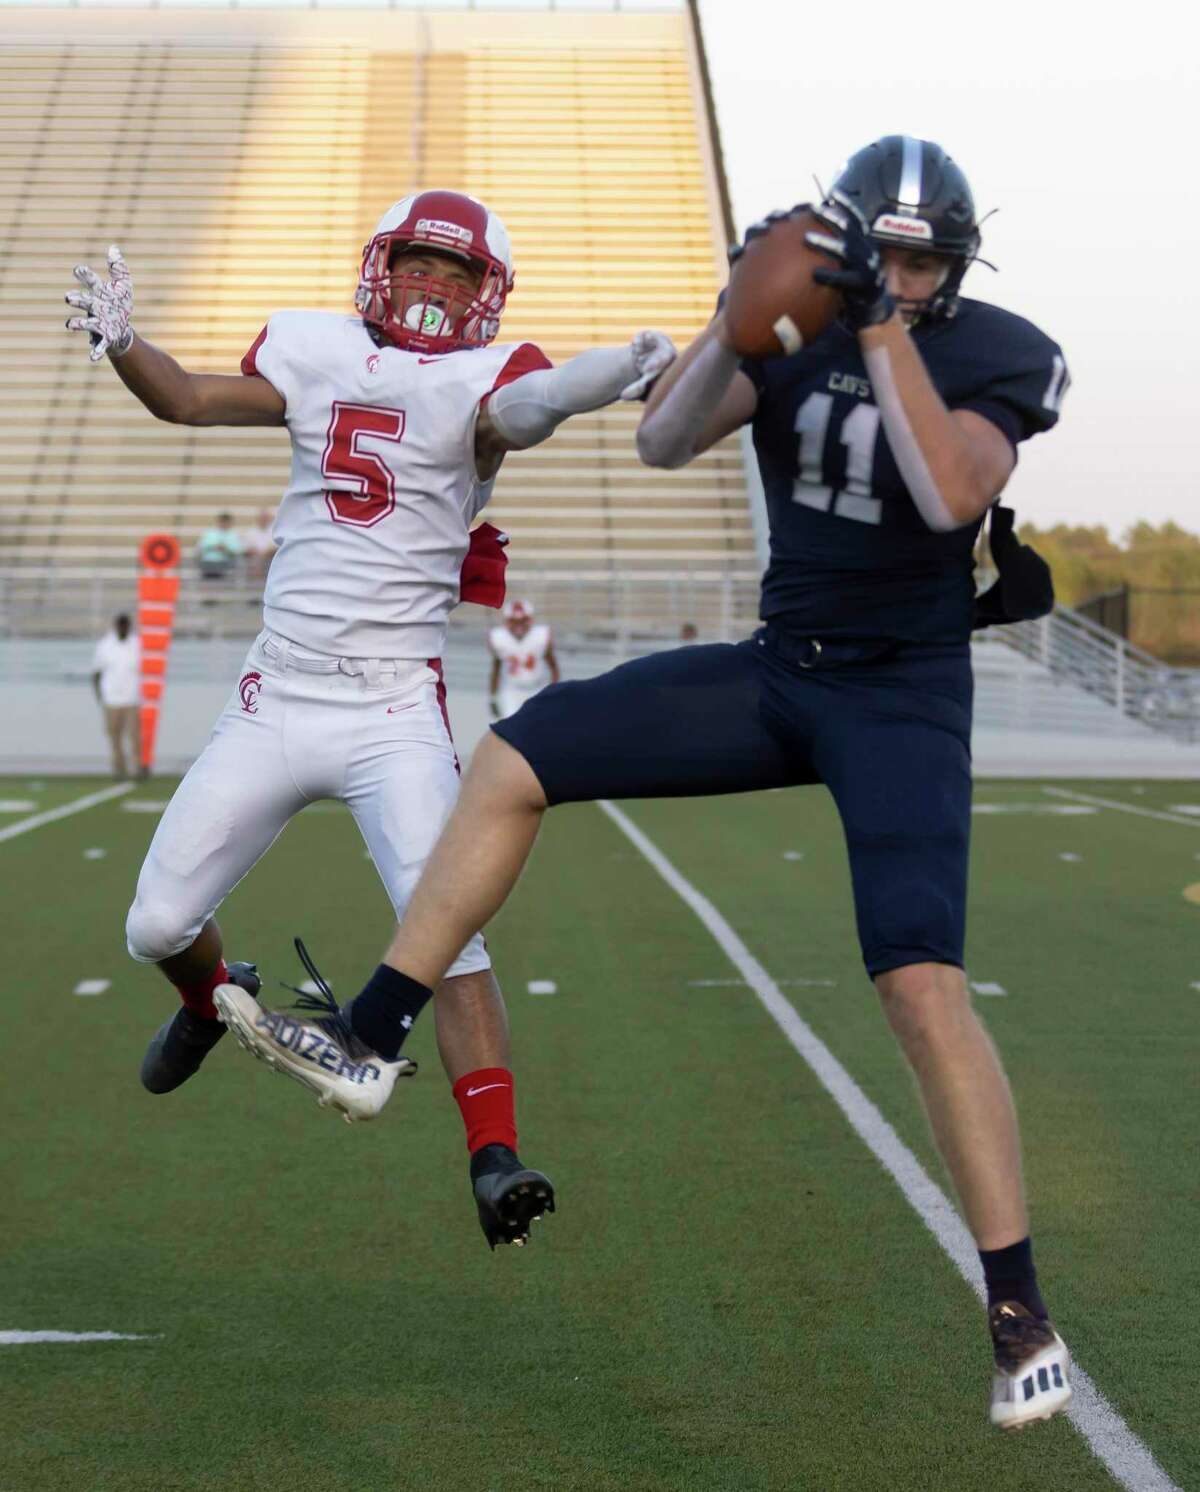 College Park tightend Cody Mladenka (11) catches a pass despite pressure from Cypress Lakes defensive back Nicholas McDonald (5) during the first quarter of a non-district football game at Woodforest Bank Stadium, Thursday, Sept. 9, 2021 in Shenandoah.